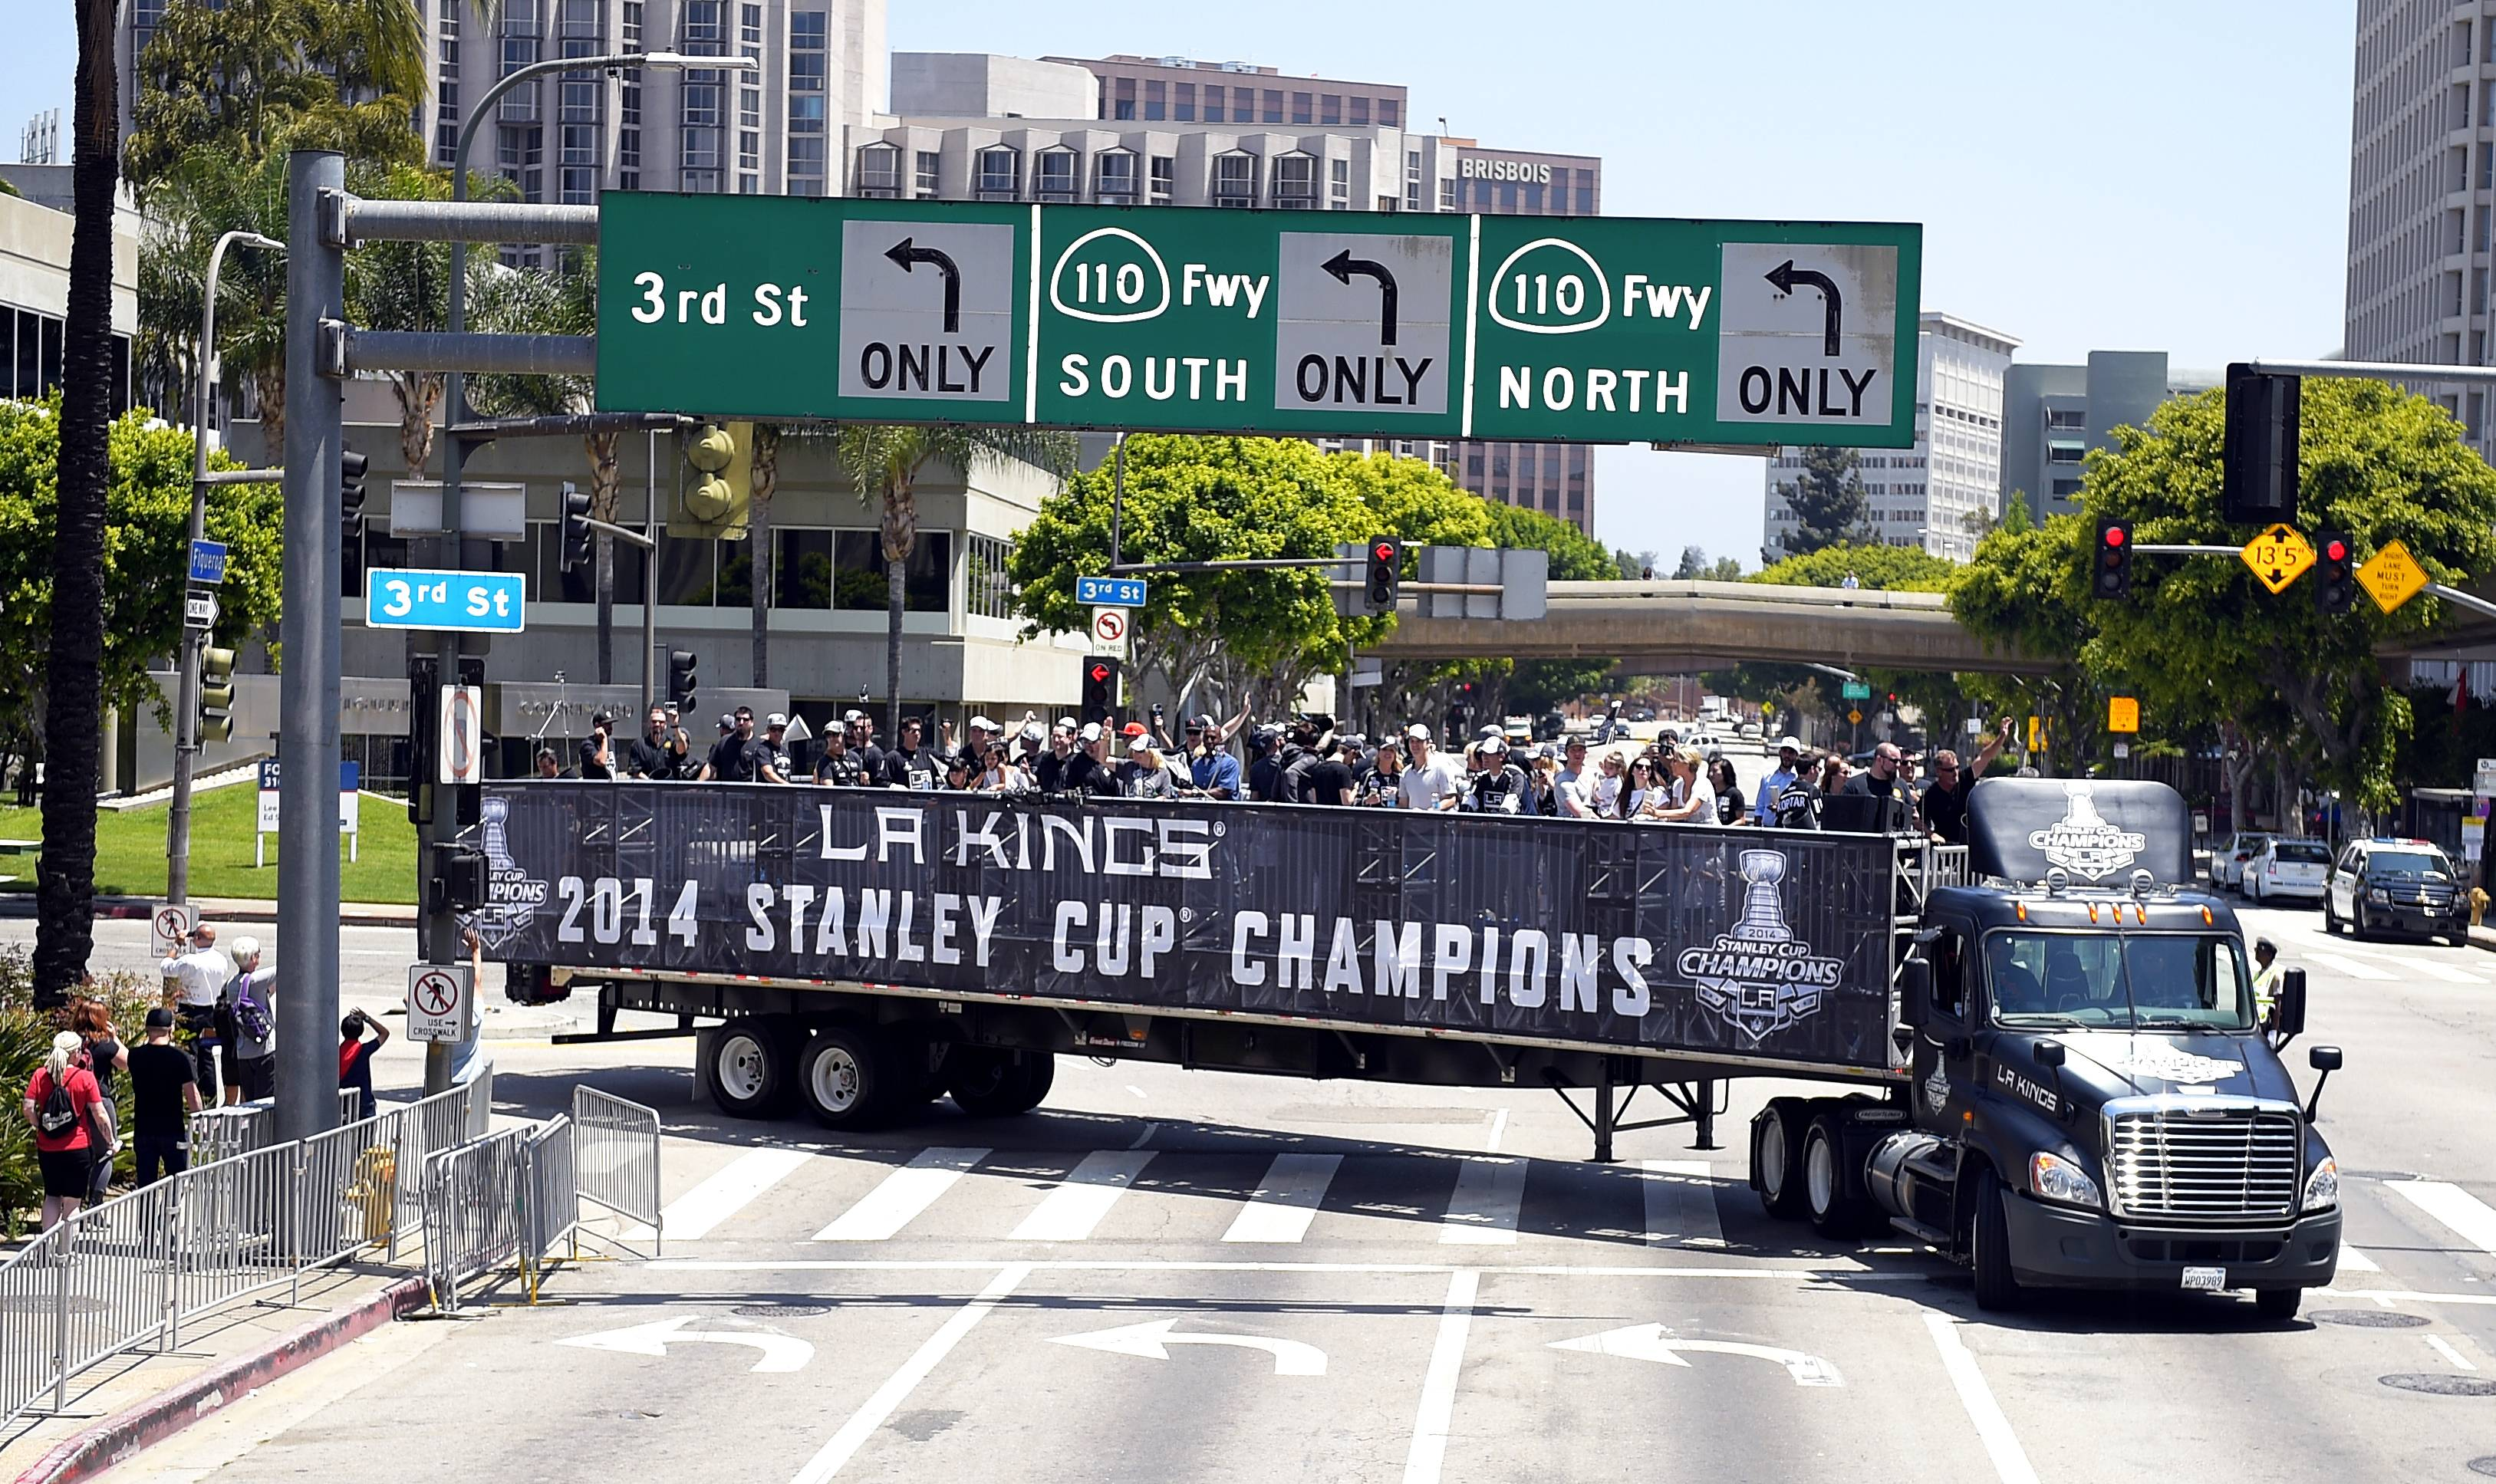 Members of the Los Angeles Kings NHL hockey team ride through downtown Los Angeles to celebrate the Kings' second Stanley Cup championship in three seasons. The Kings defeated the New York Rangers for the title.